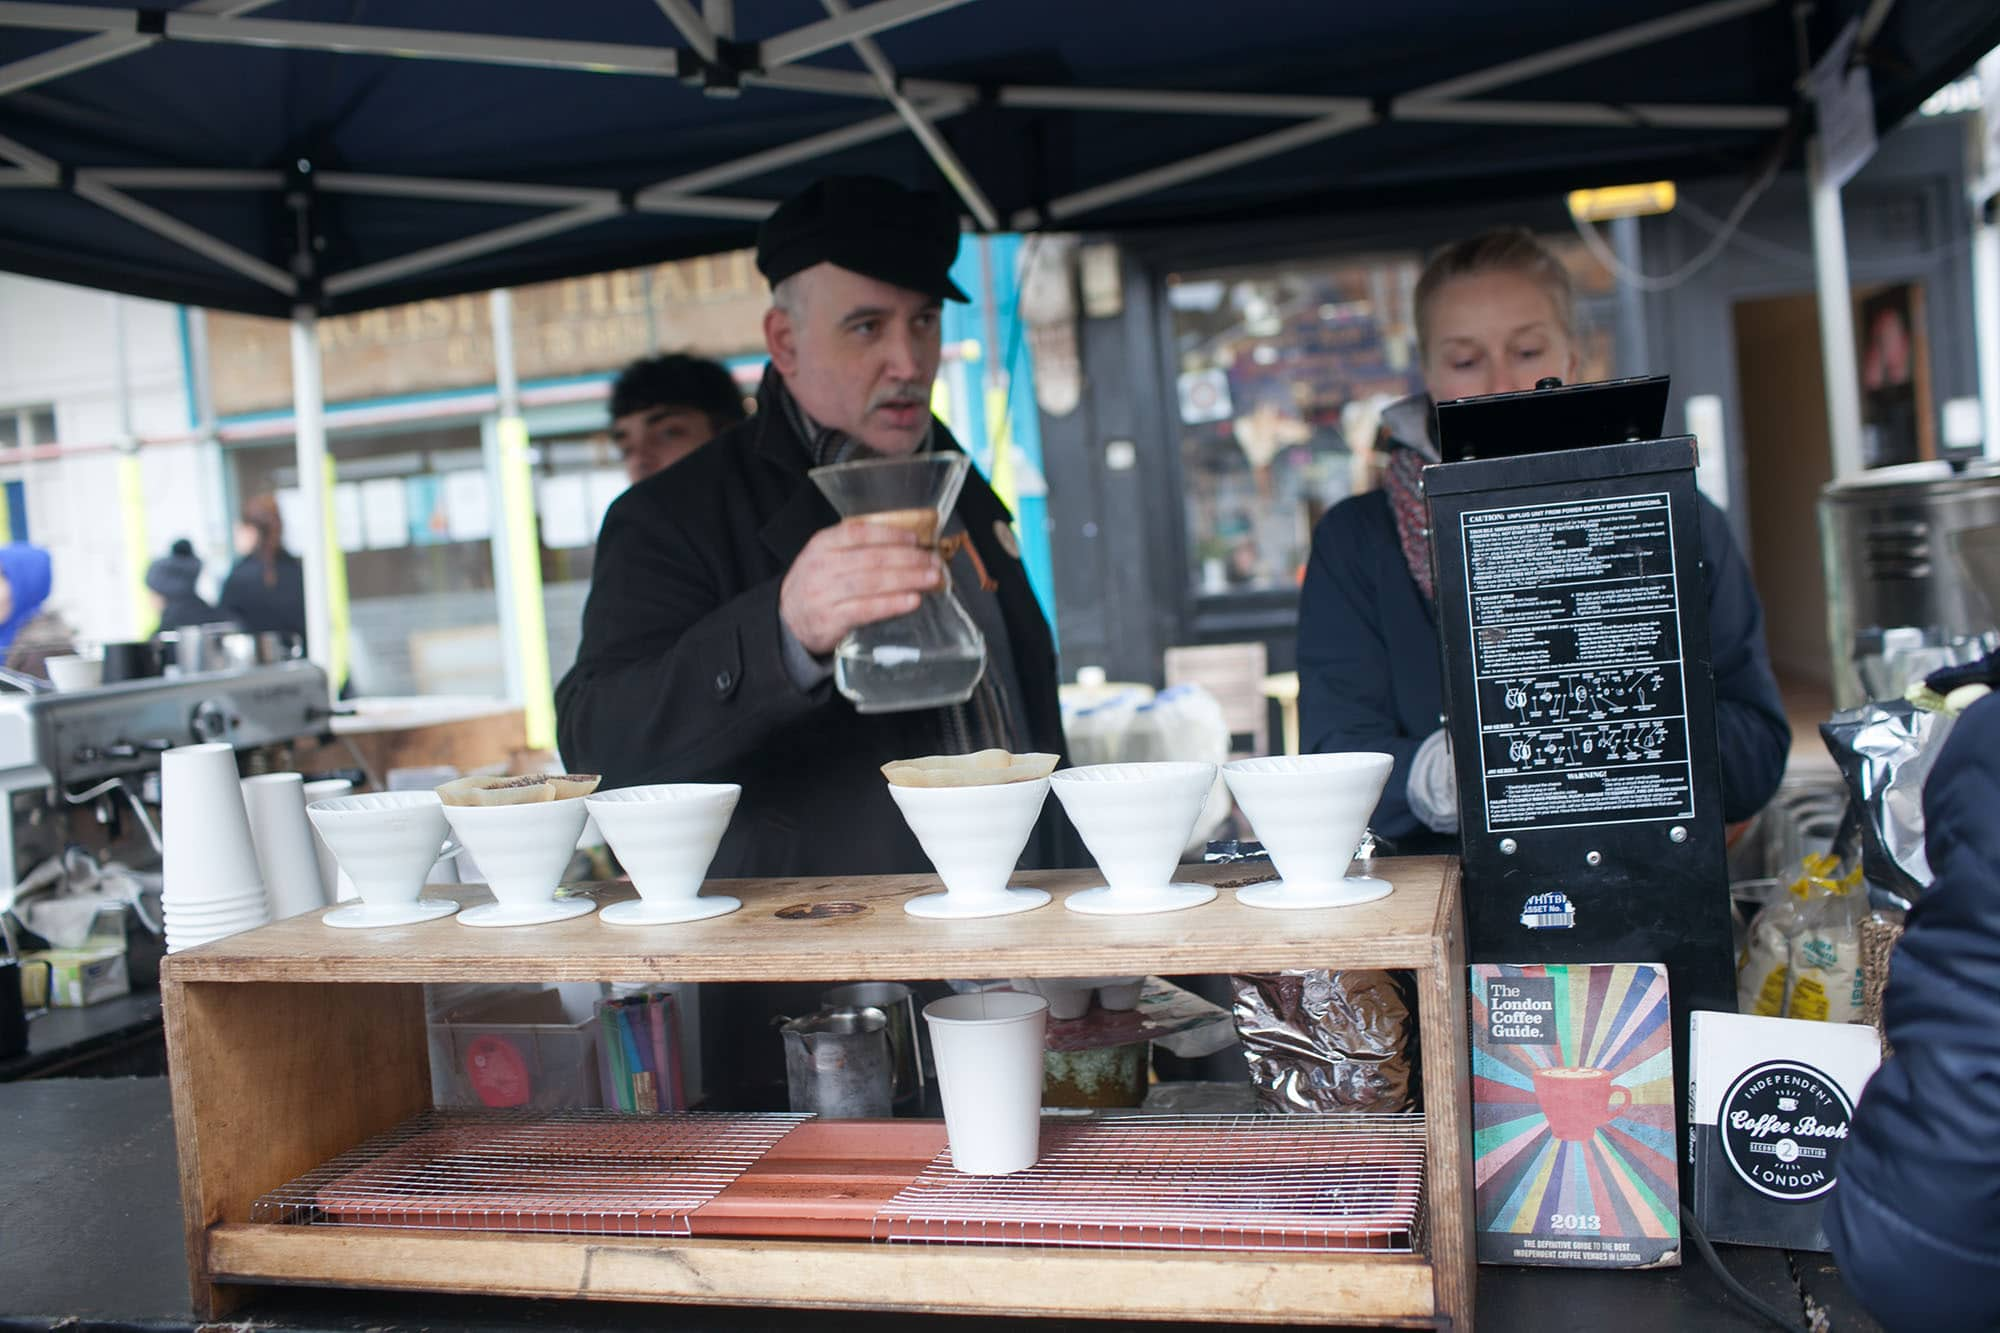 Coffee at Broadway Market in London, England